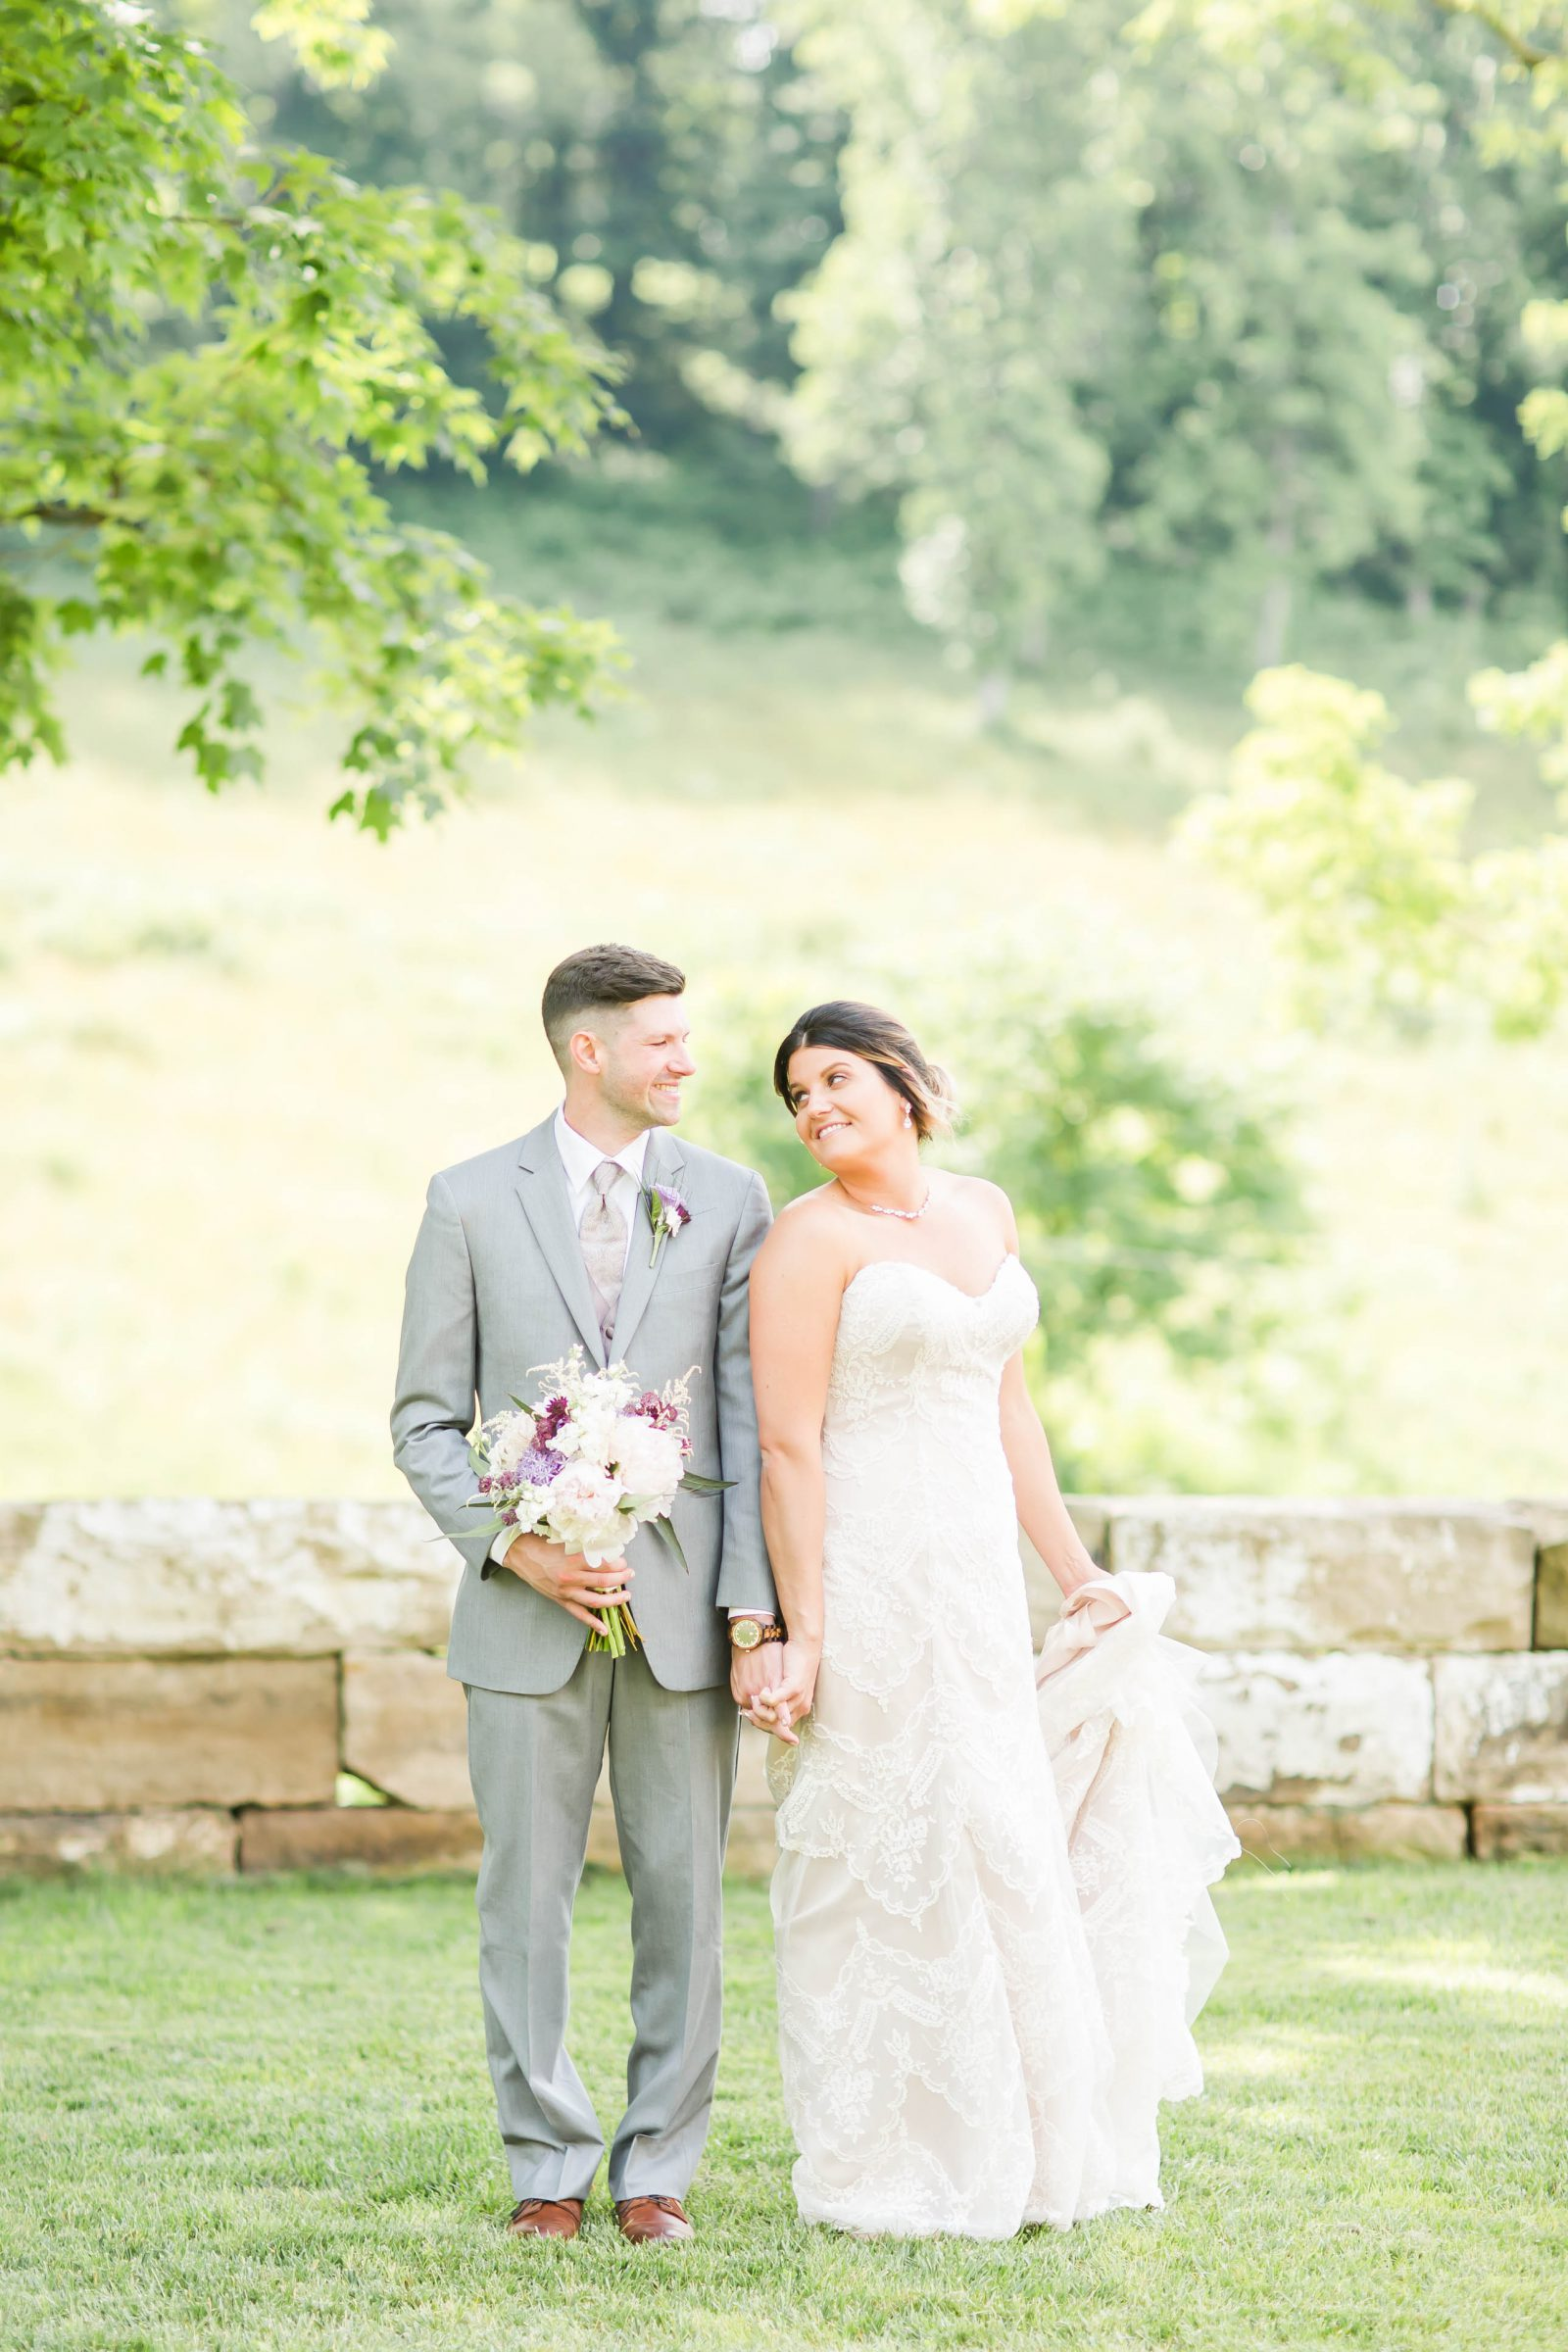 rivercrest-farm-summer-wedding-loren-jackson-photography-47